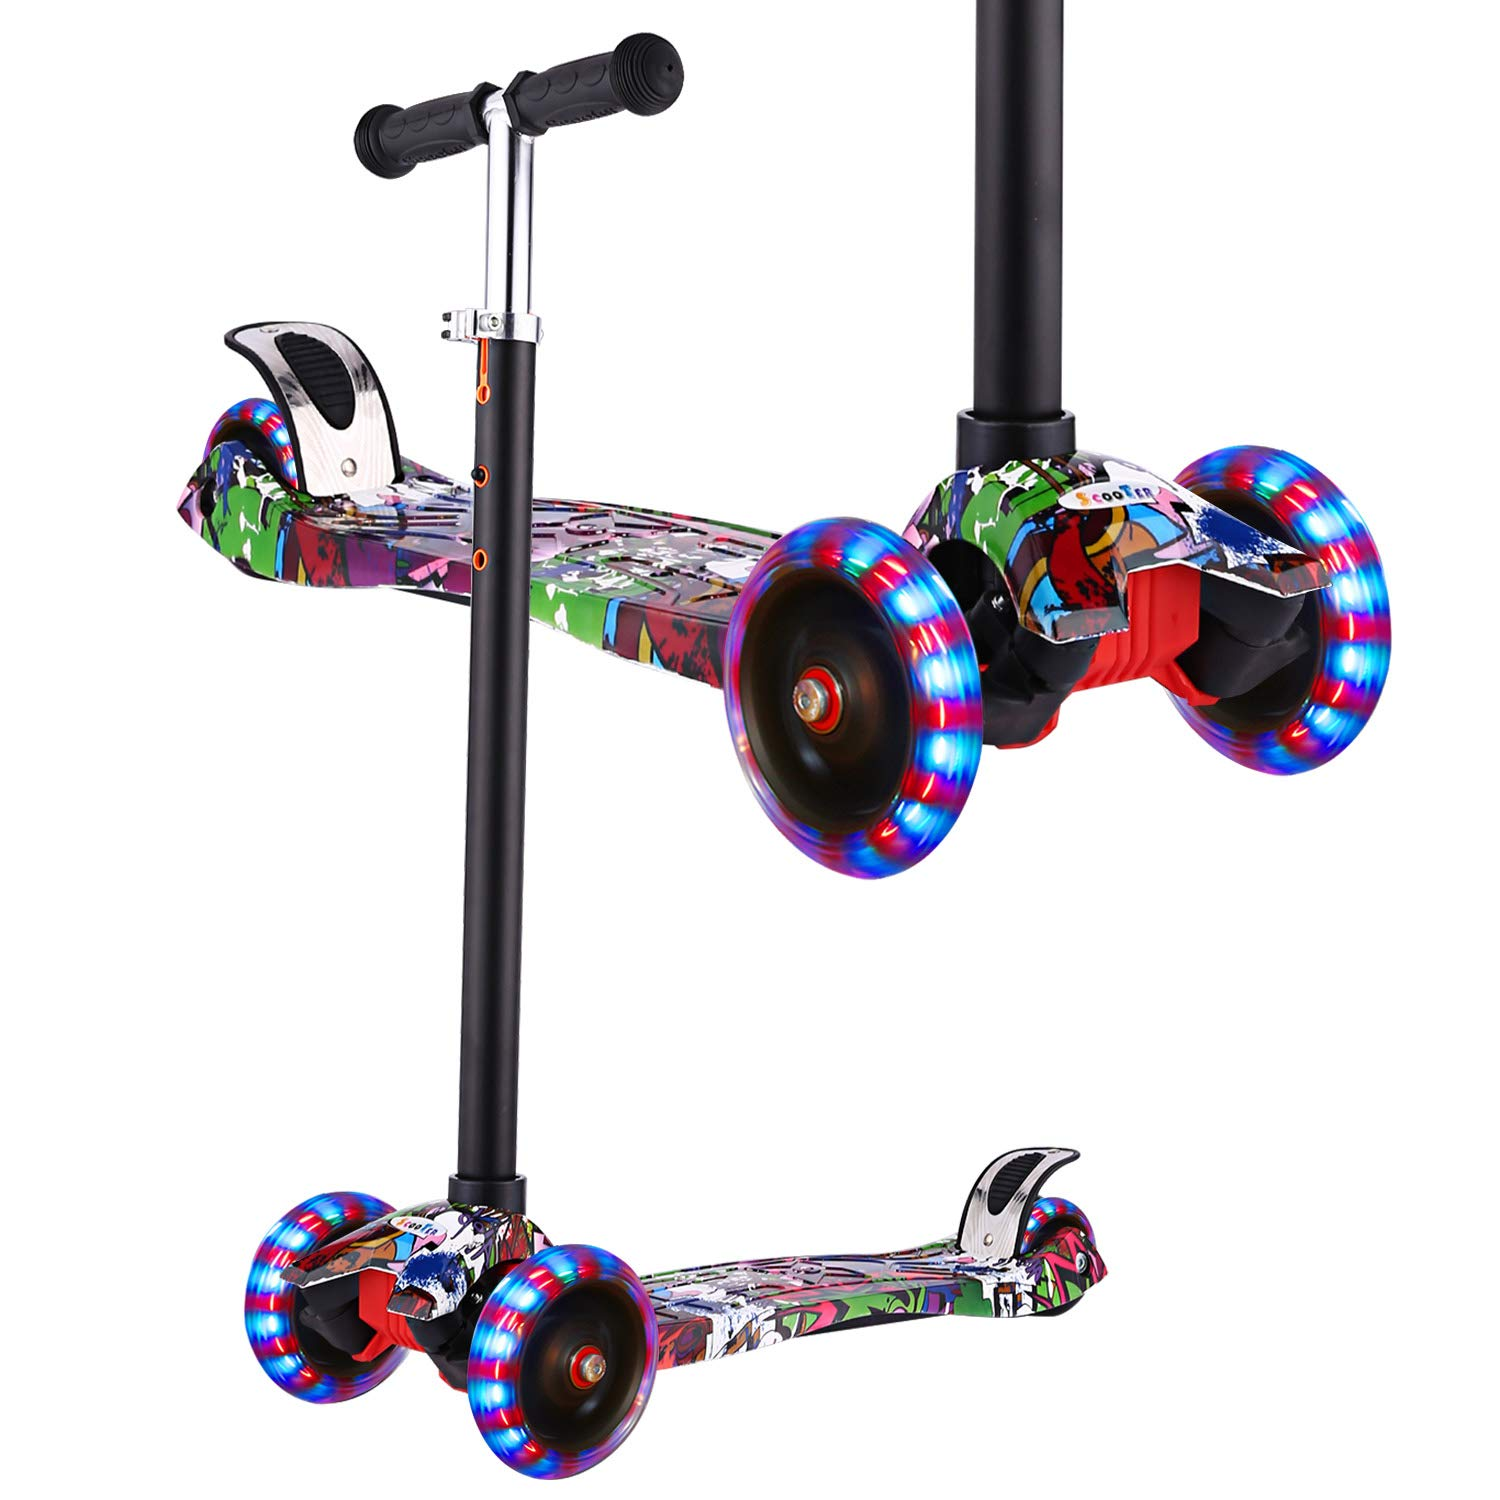 Hikole Kids Scooter - Adjustable, 3 Wheel Mini Adjustable Kick Scooter with LED Light Up Wheels, Gifts for Girls Boys Age 3 to 12, Support 100Lbs by Hikole (Image #1)